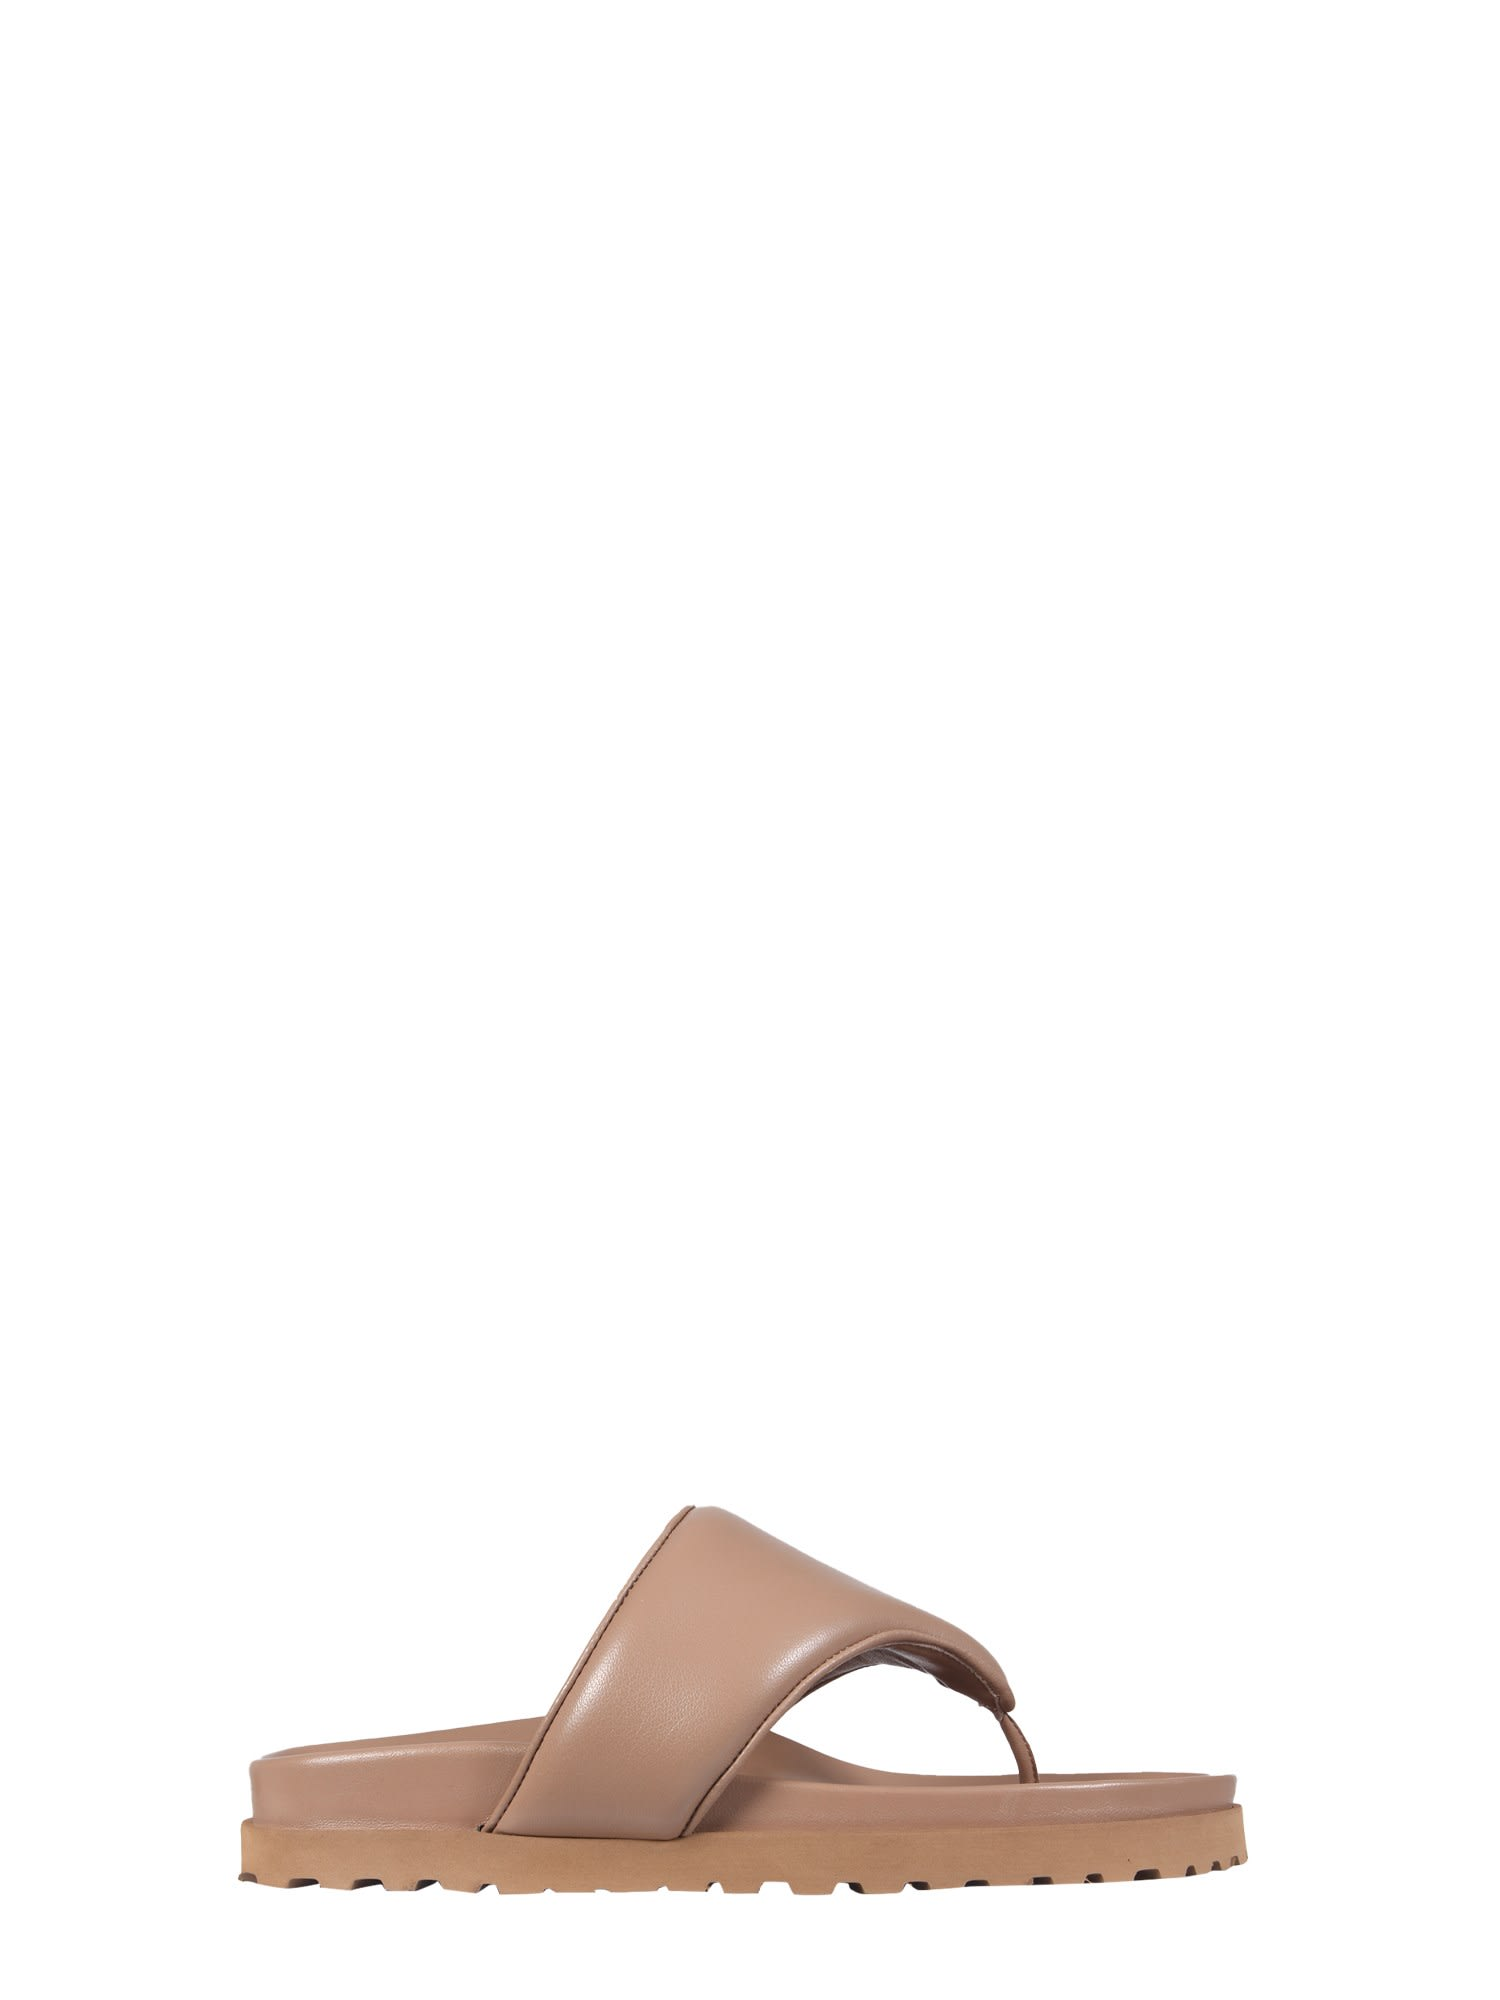 Gia Couture THONG SANDALS